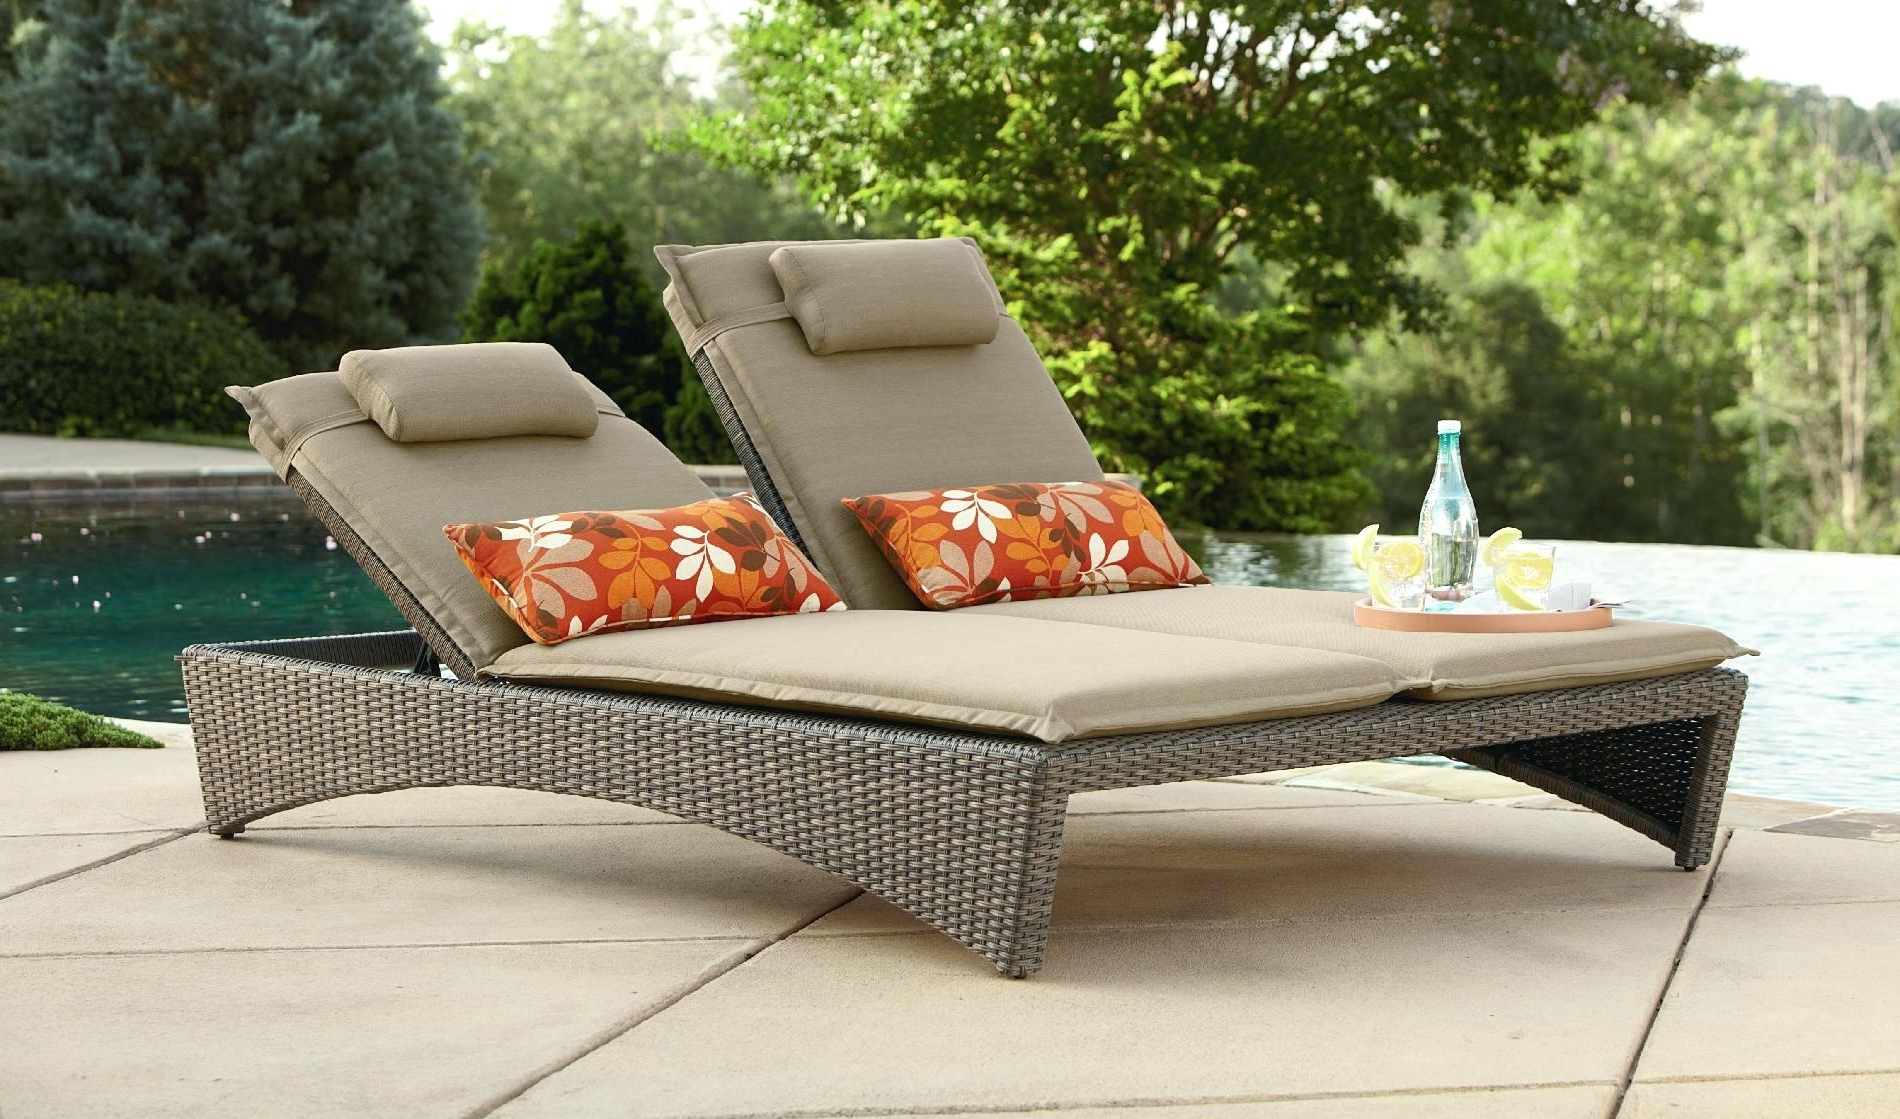 Current Outdoor Chaise Lounge Chairs Under 100 Awesome Chair For Two Pertaining To Cheap Outdoor Chaise Lounge Chairs (View 11 of 15)